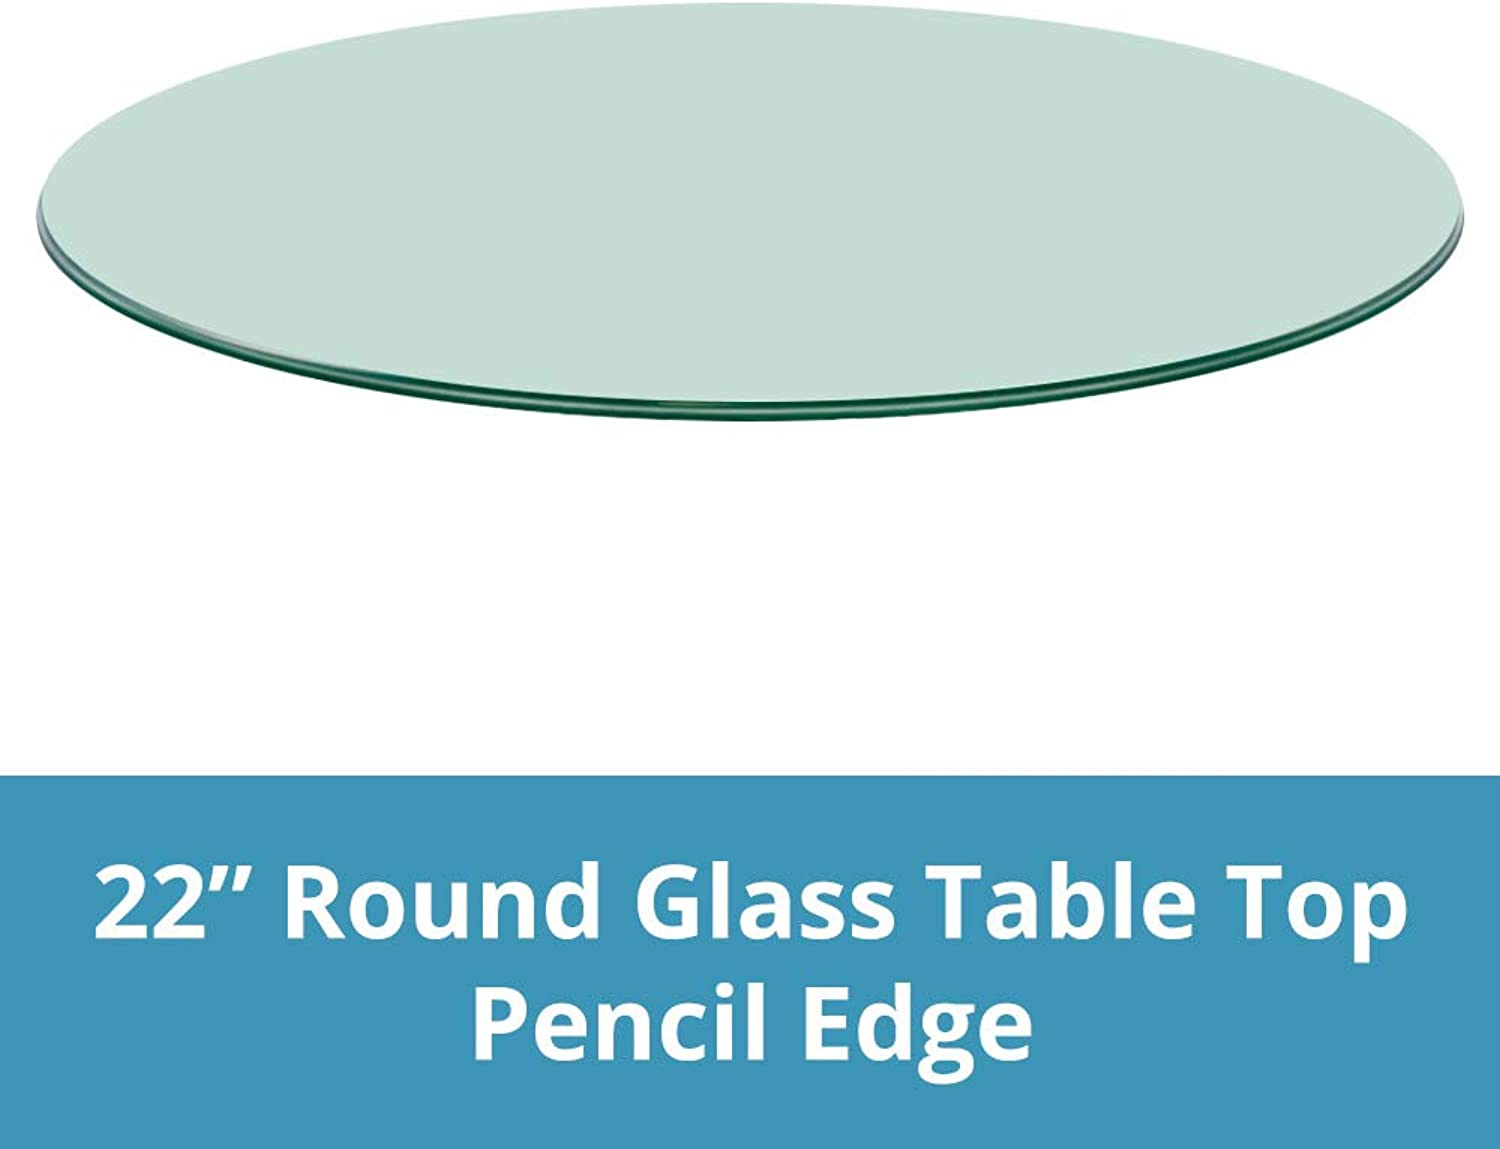 Round Glass Table Top Clear Tempered 3 8  Thick Glass With Pencil Edge For Dining Table, Coffee Table, Home & Office Use - 22 L by TroySys